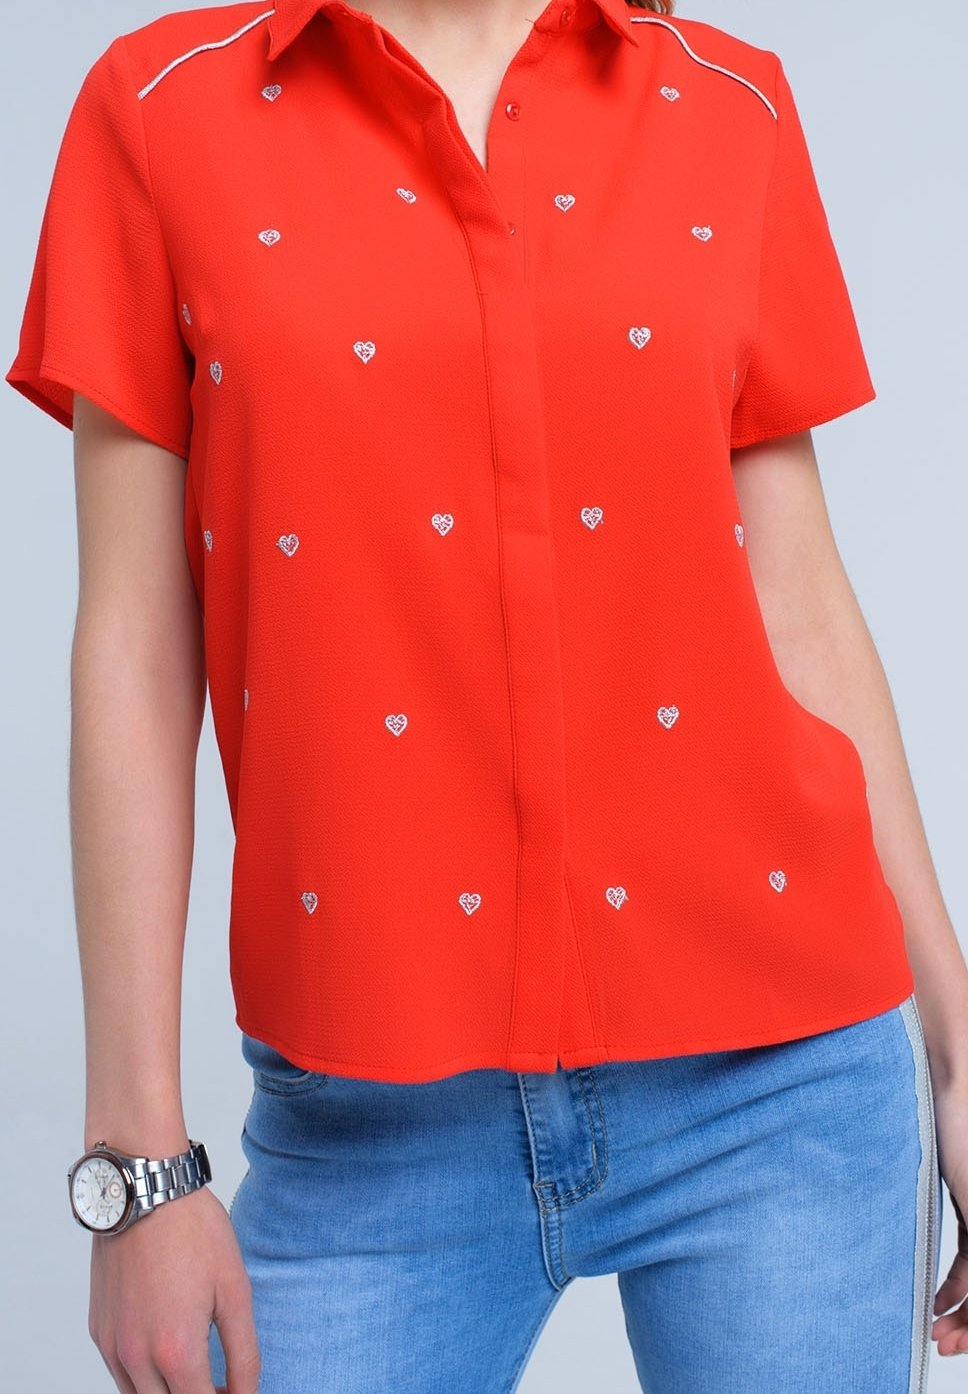 Q2 Button-down Blouse - Red